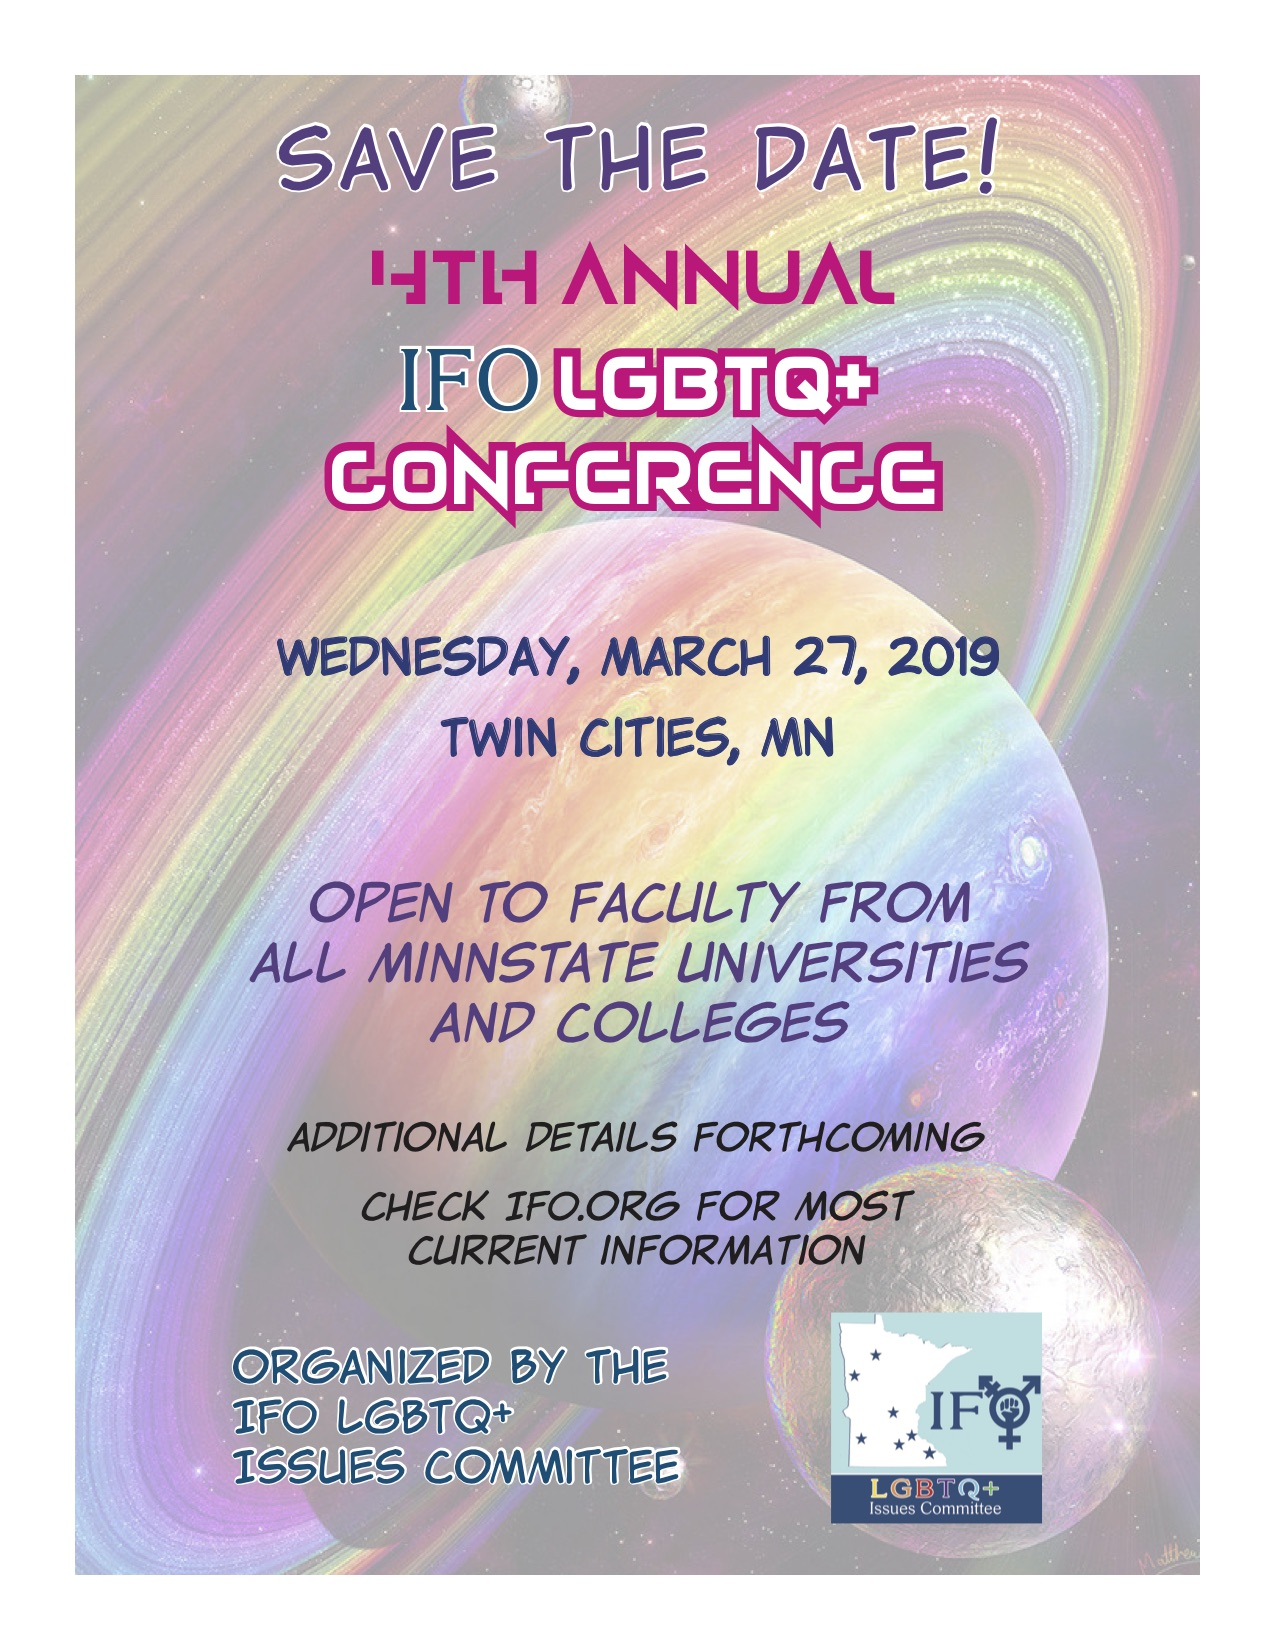 2019 LGBTQ+ conference save the date full page flyer.jpg